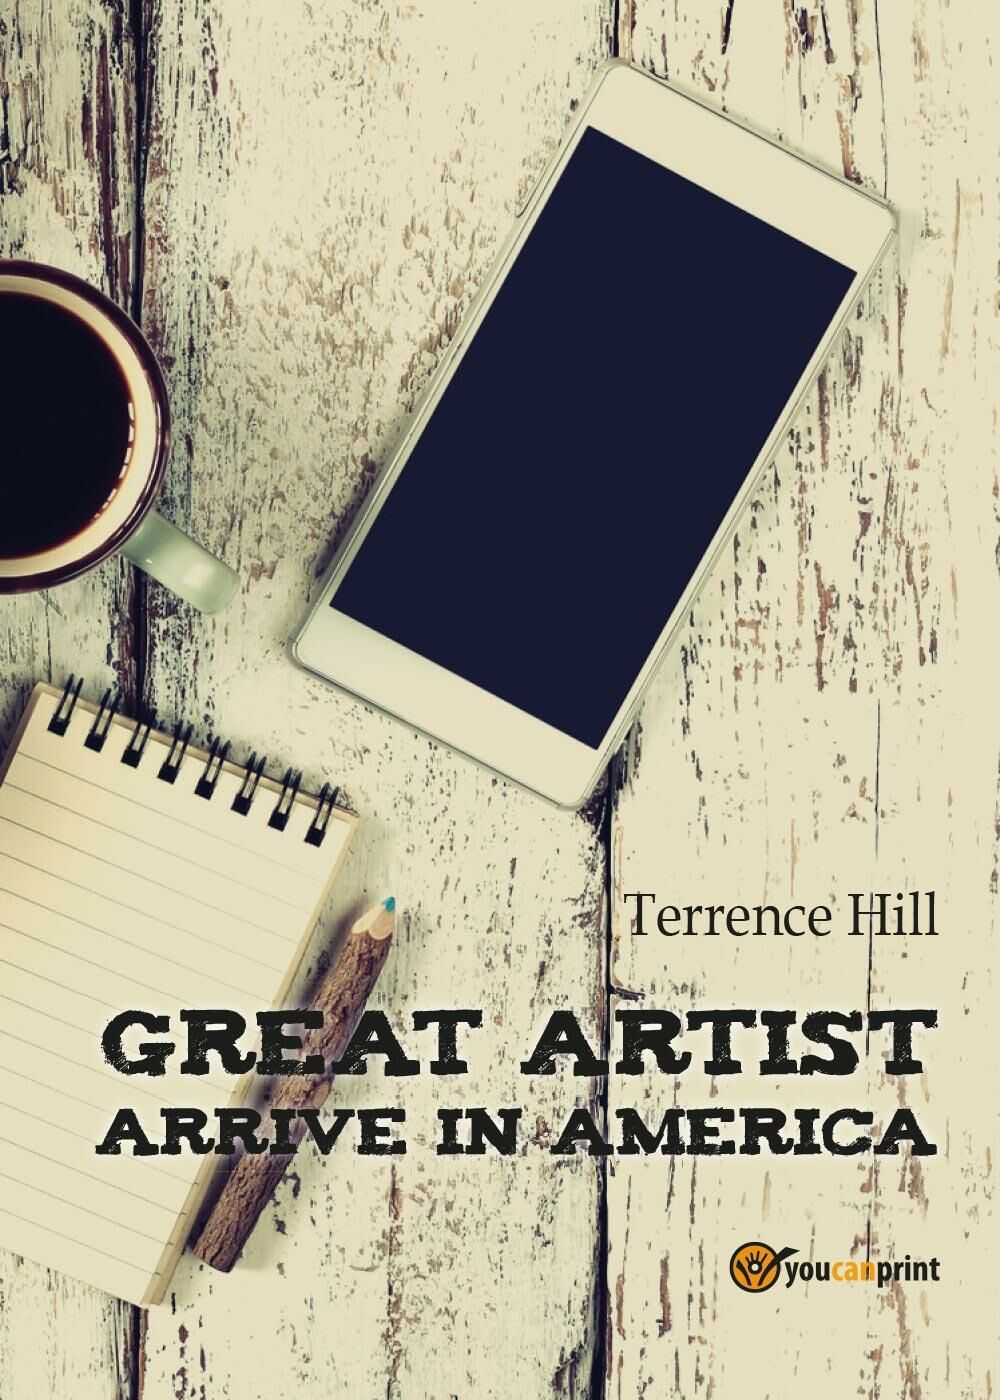 Great artist arrive in America